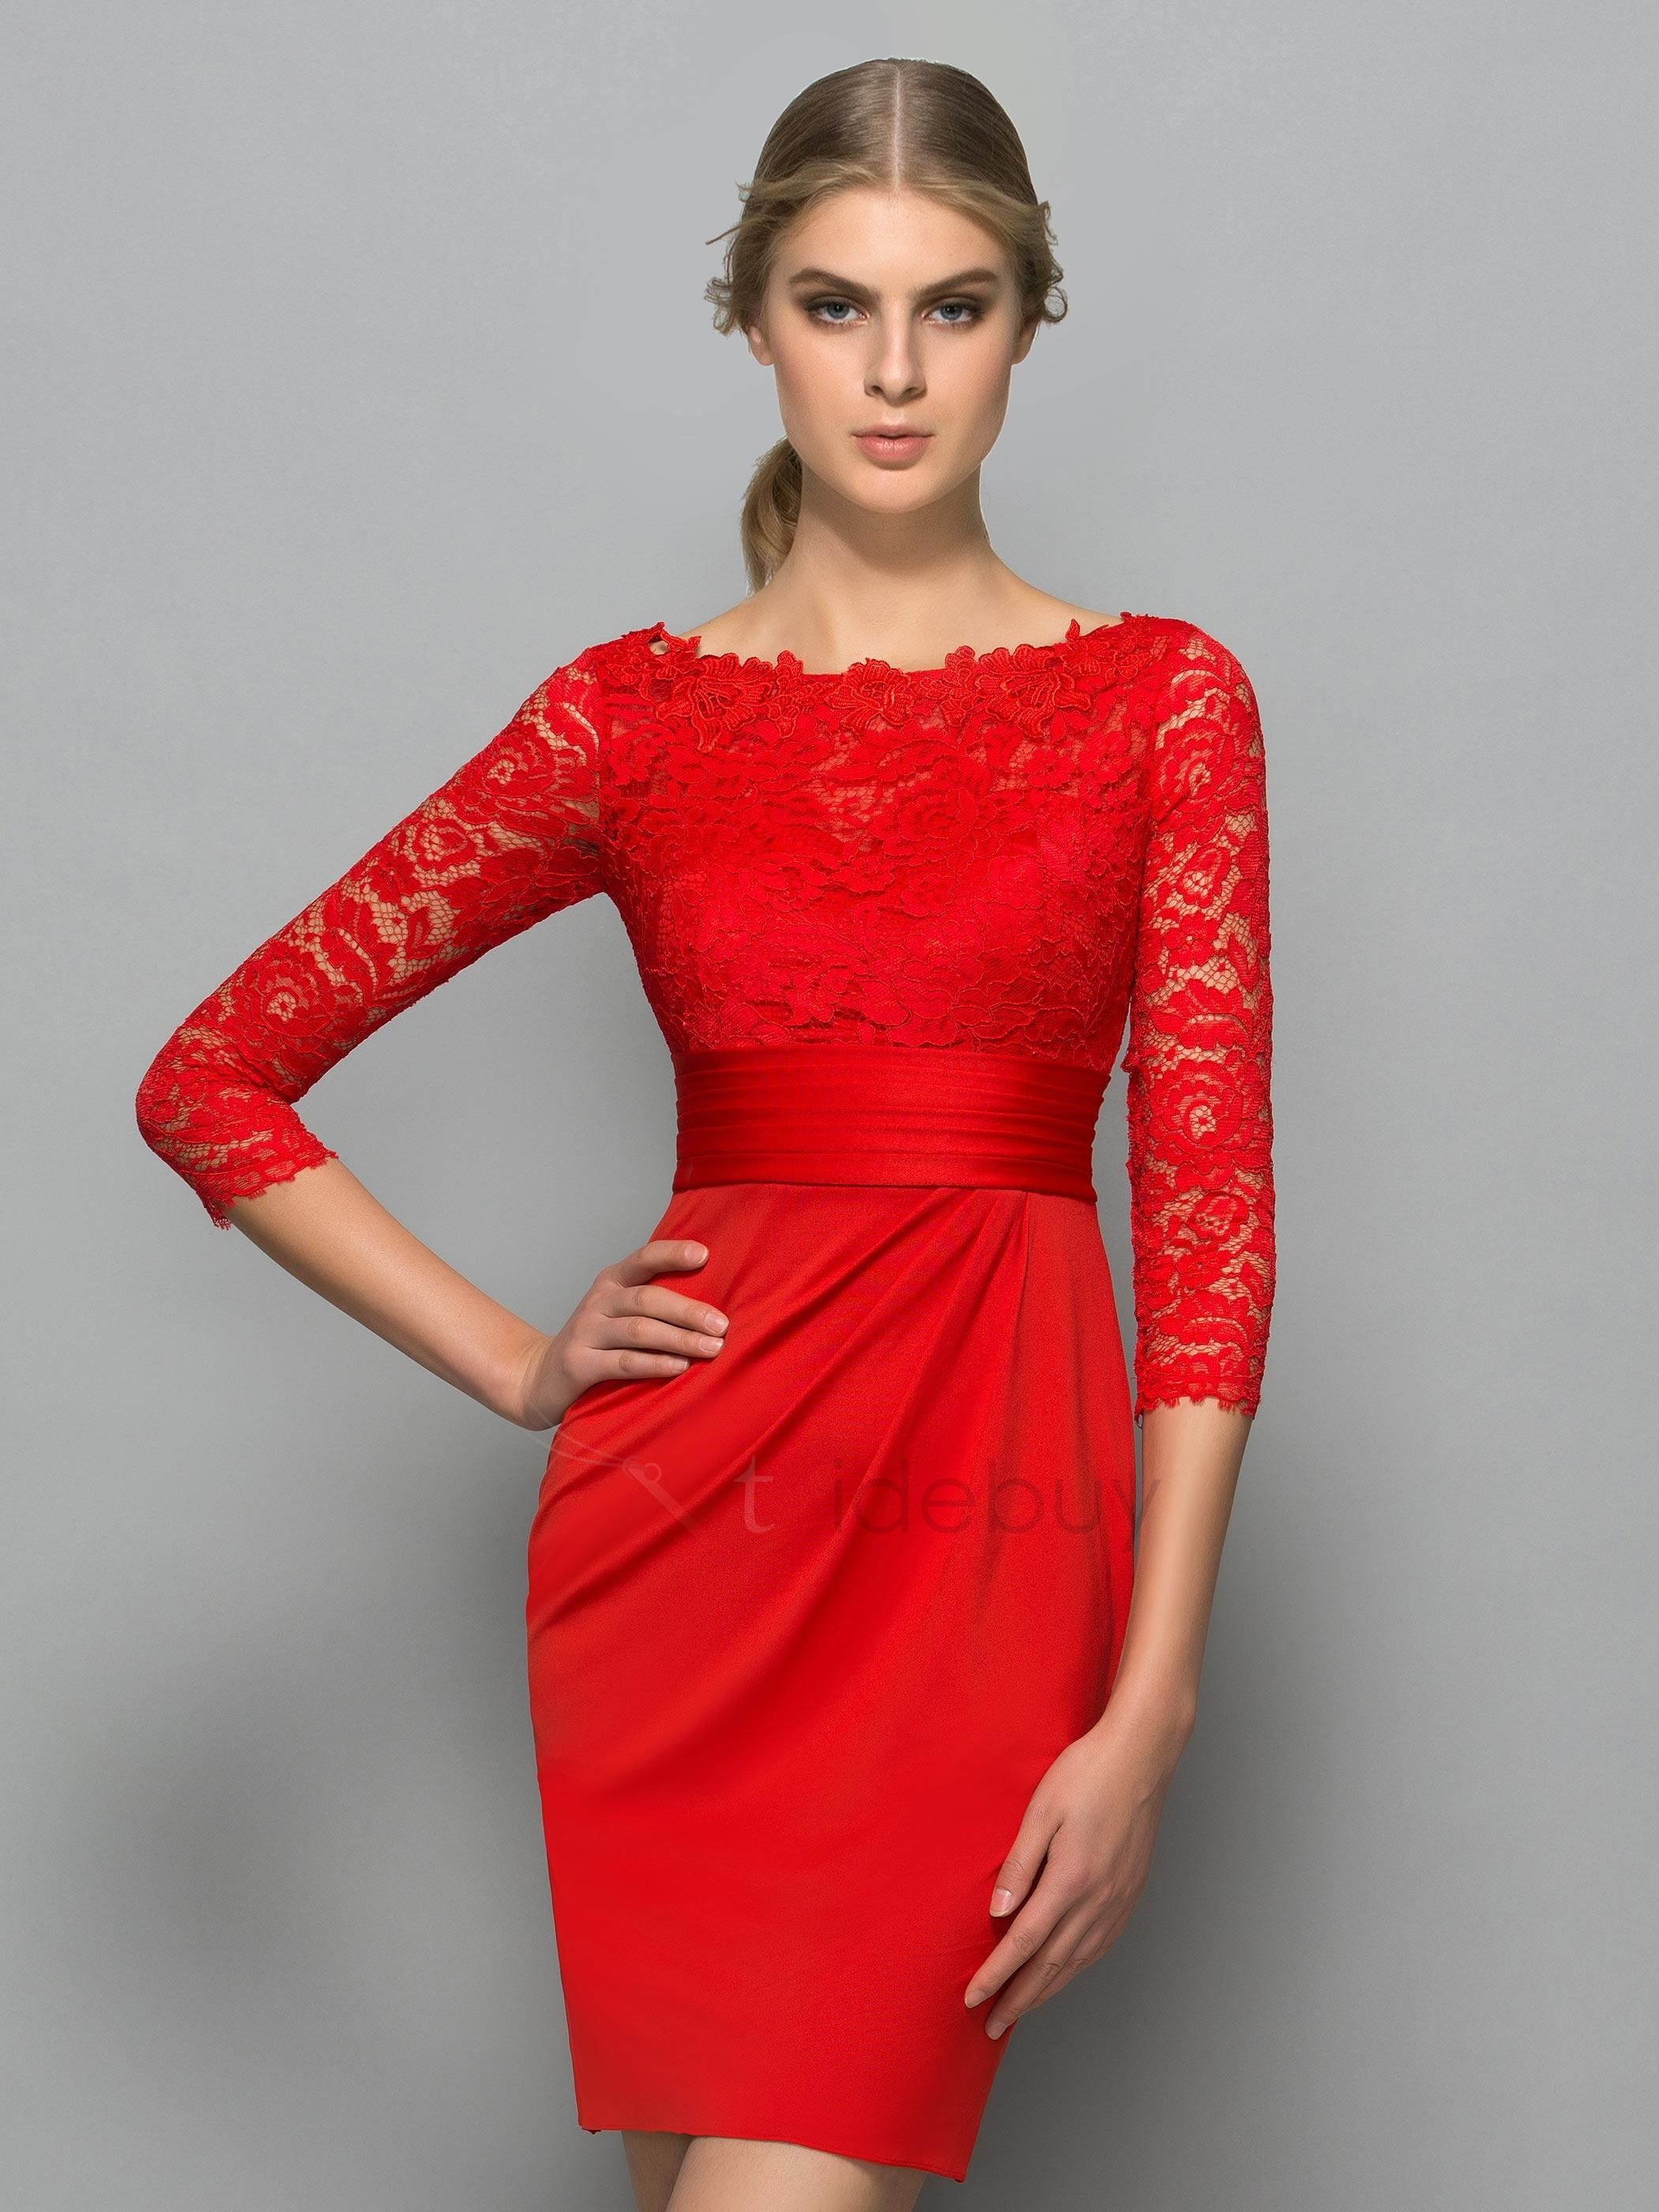 Classy Bateau Neck Length Sleeve Red Lace Cocktail Dress Diane